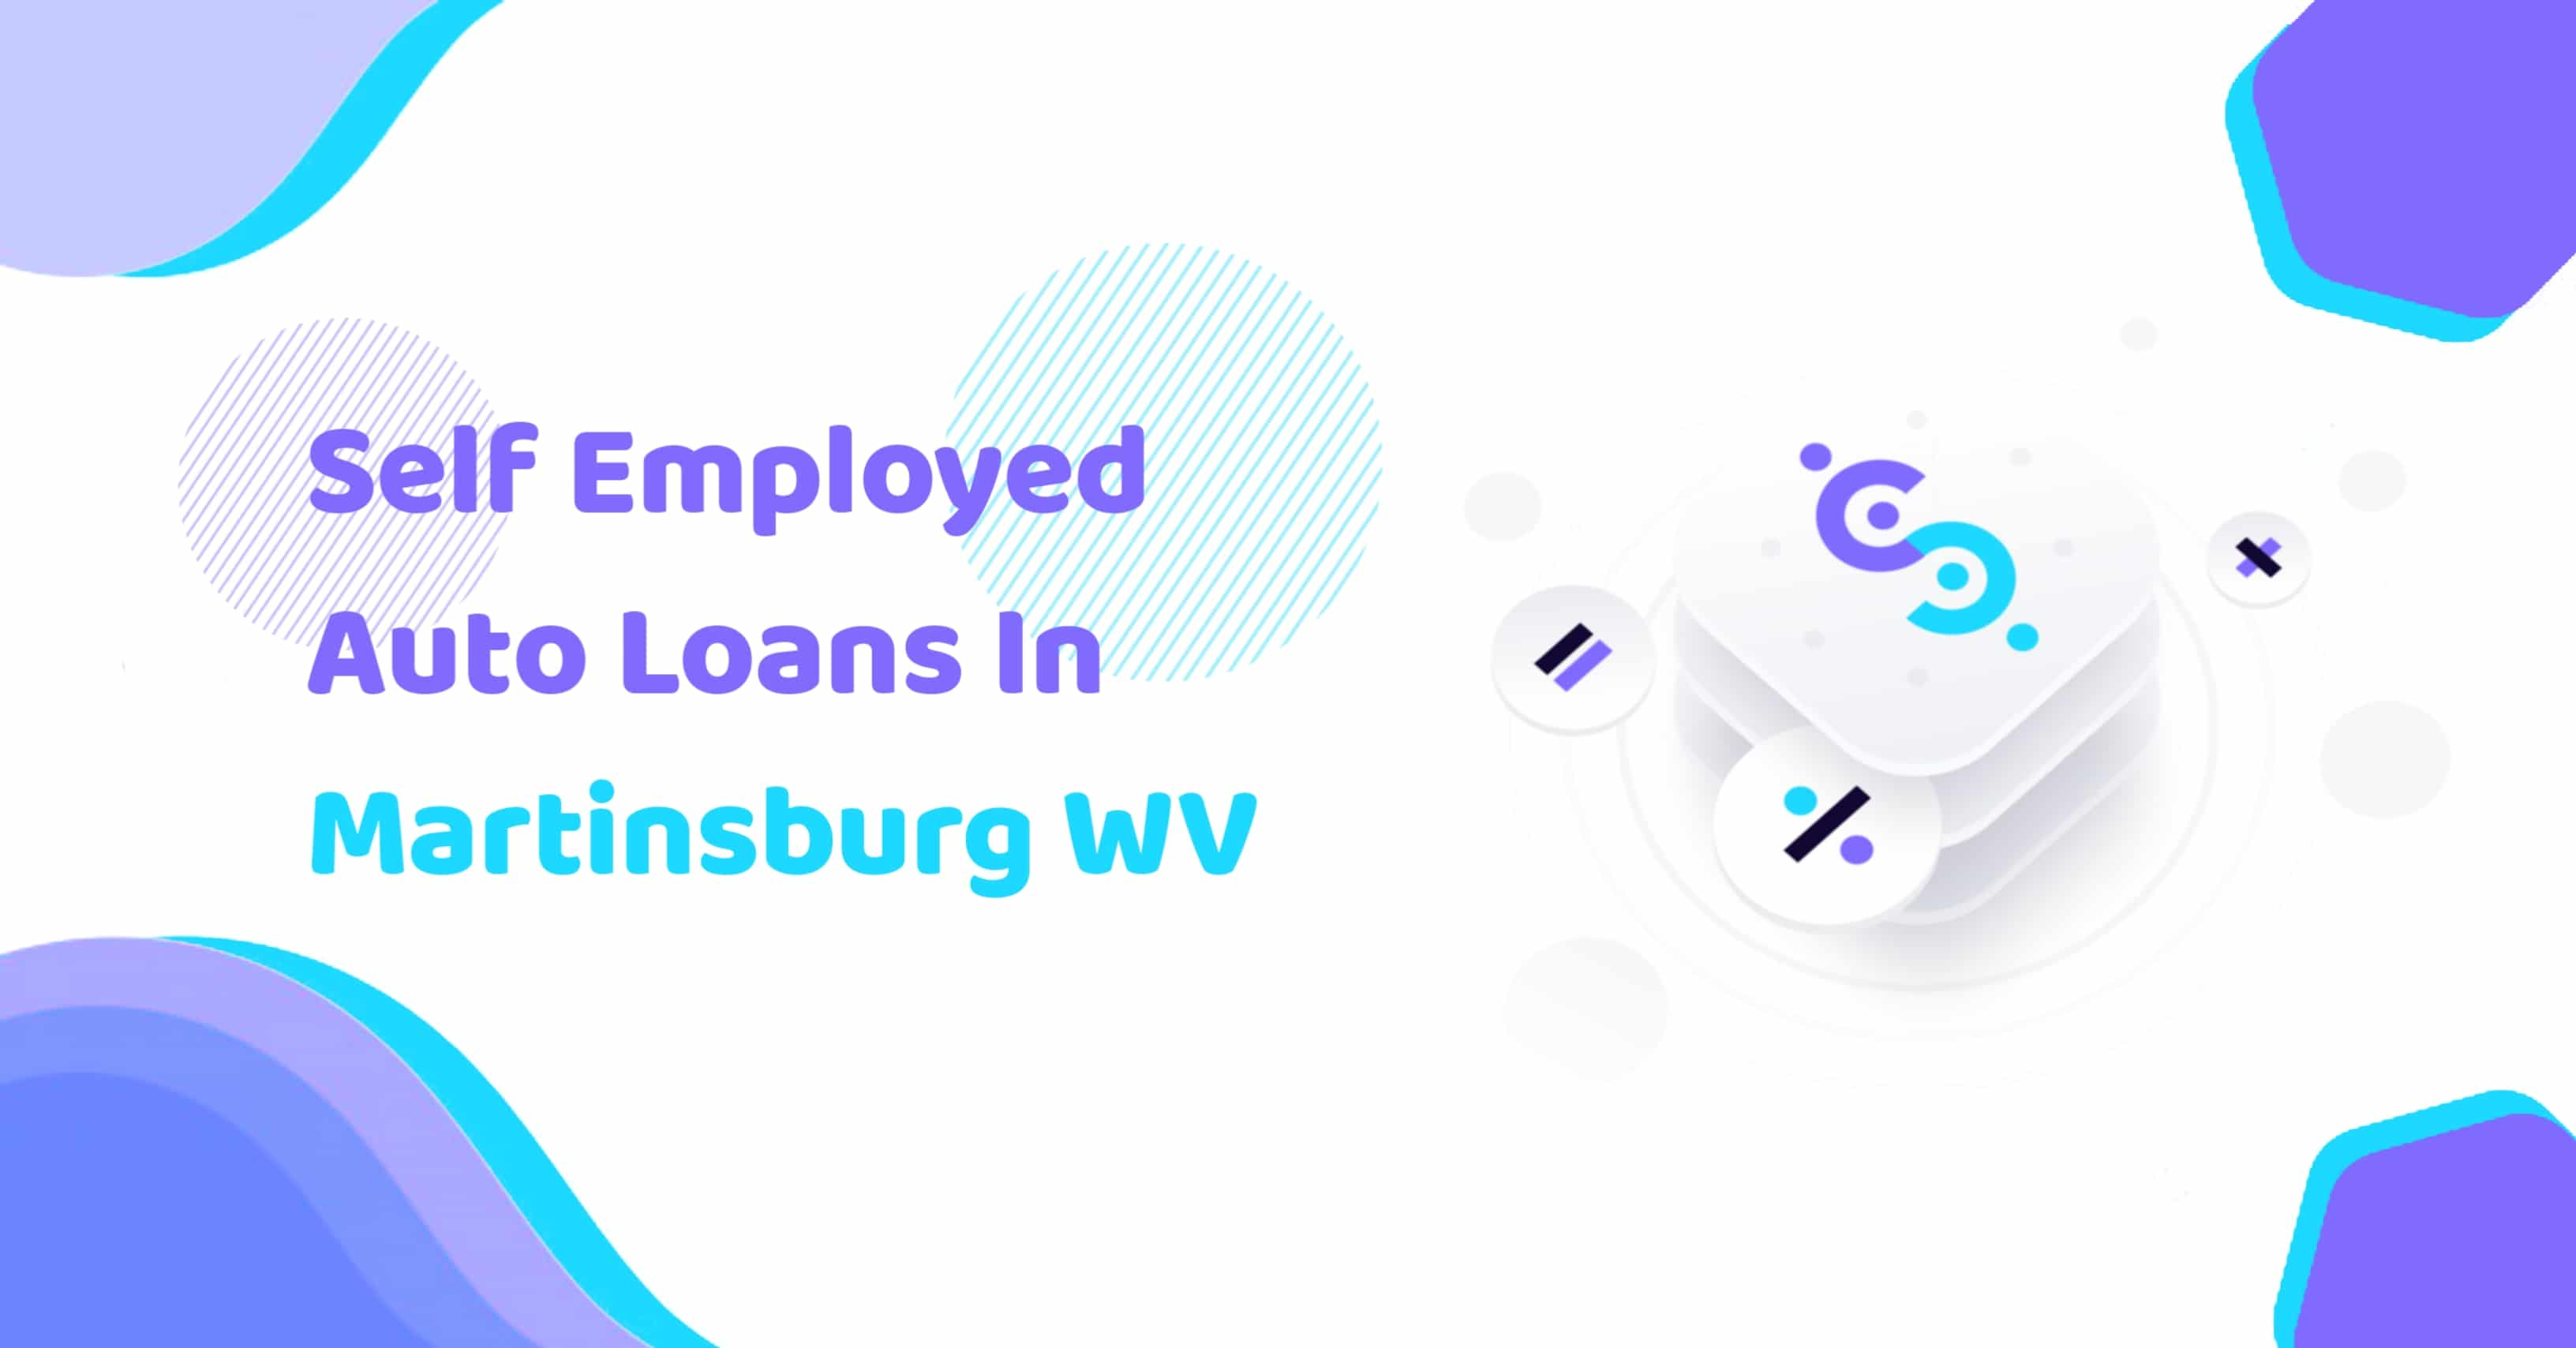 Self Employed Auto Loans In Martinsburg WV